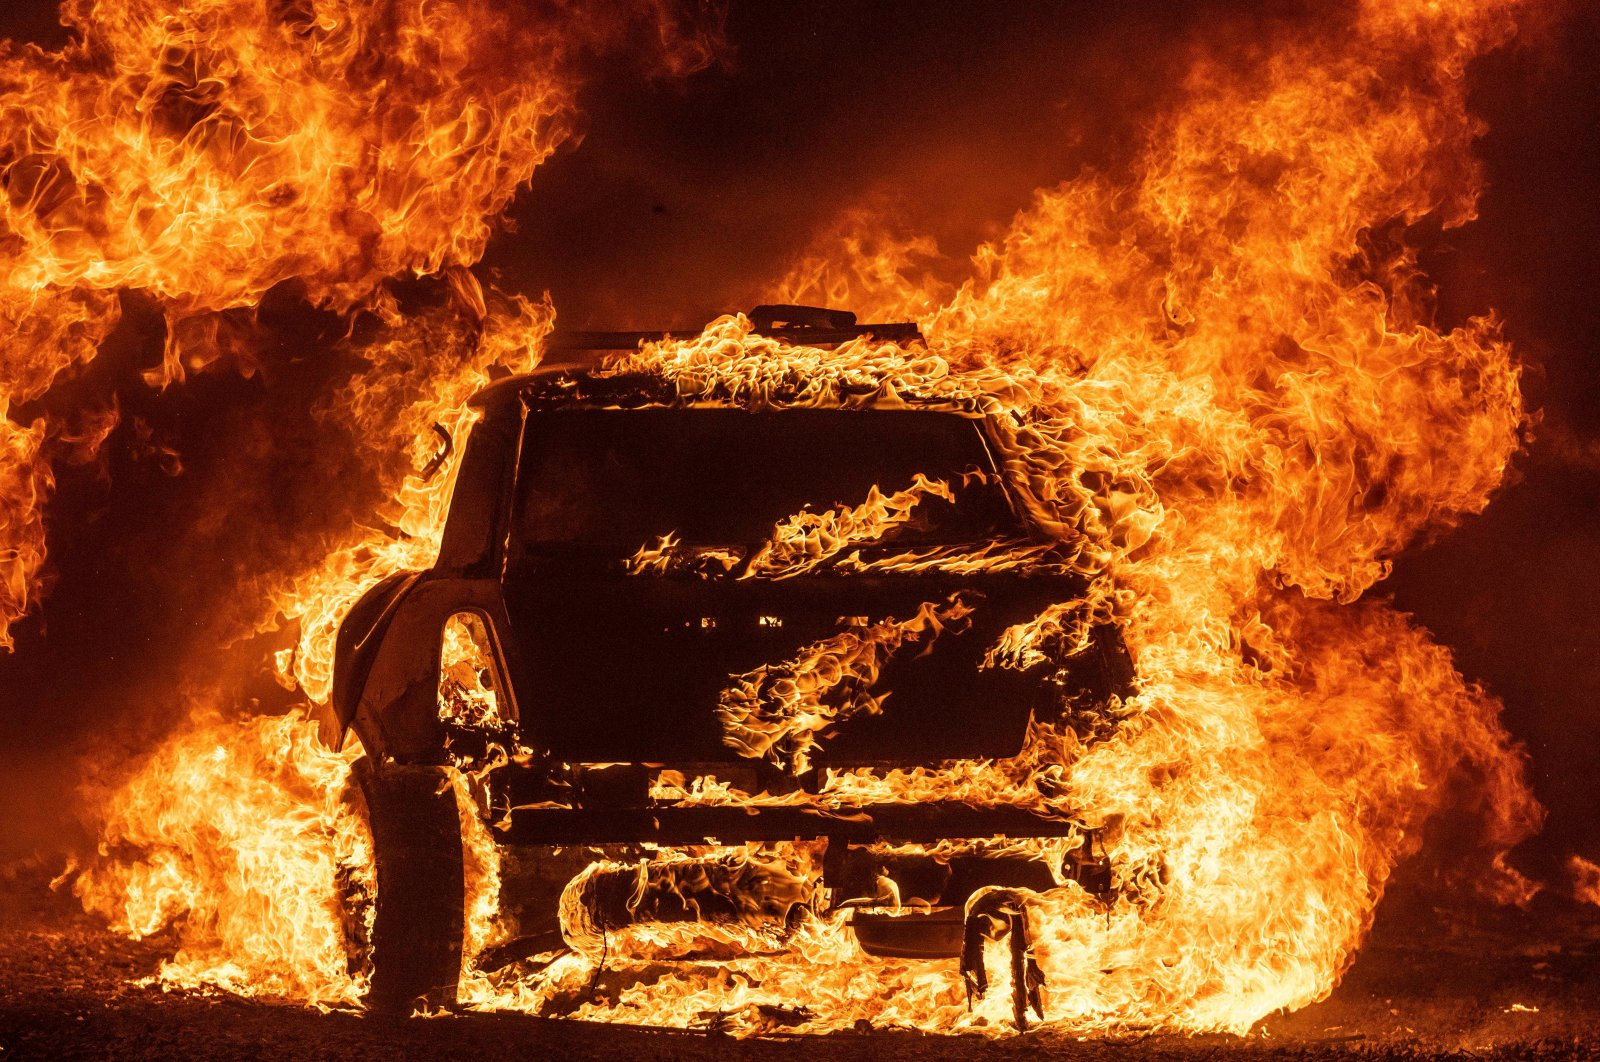 A car burns while parked at a residence during the LNU Lightning Complex fire in Vacaville, California on Aug. 19, 2020. (AFP Photo)